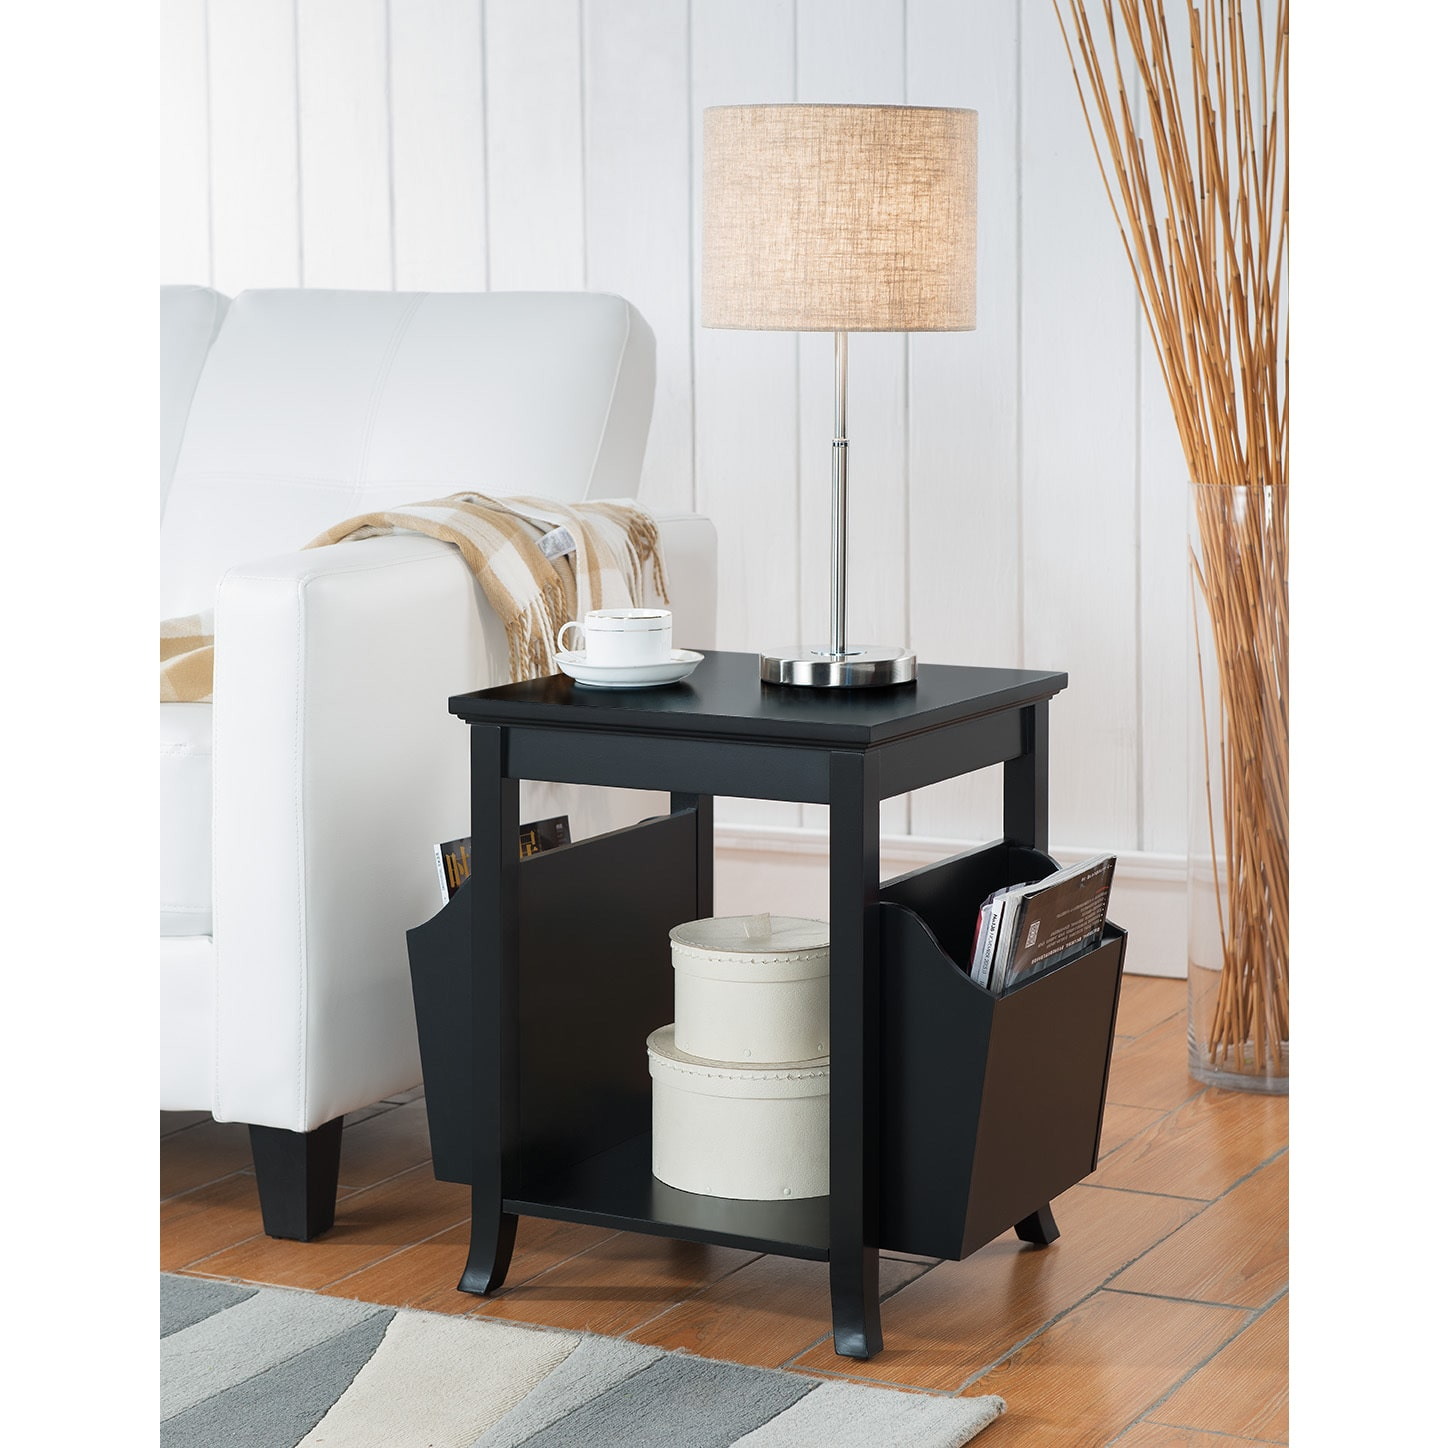 K and B Furniture Co Inc K & B Furniture Black Wood Veneer Accent Table With Magazine Rack by Overstock